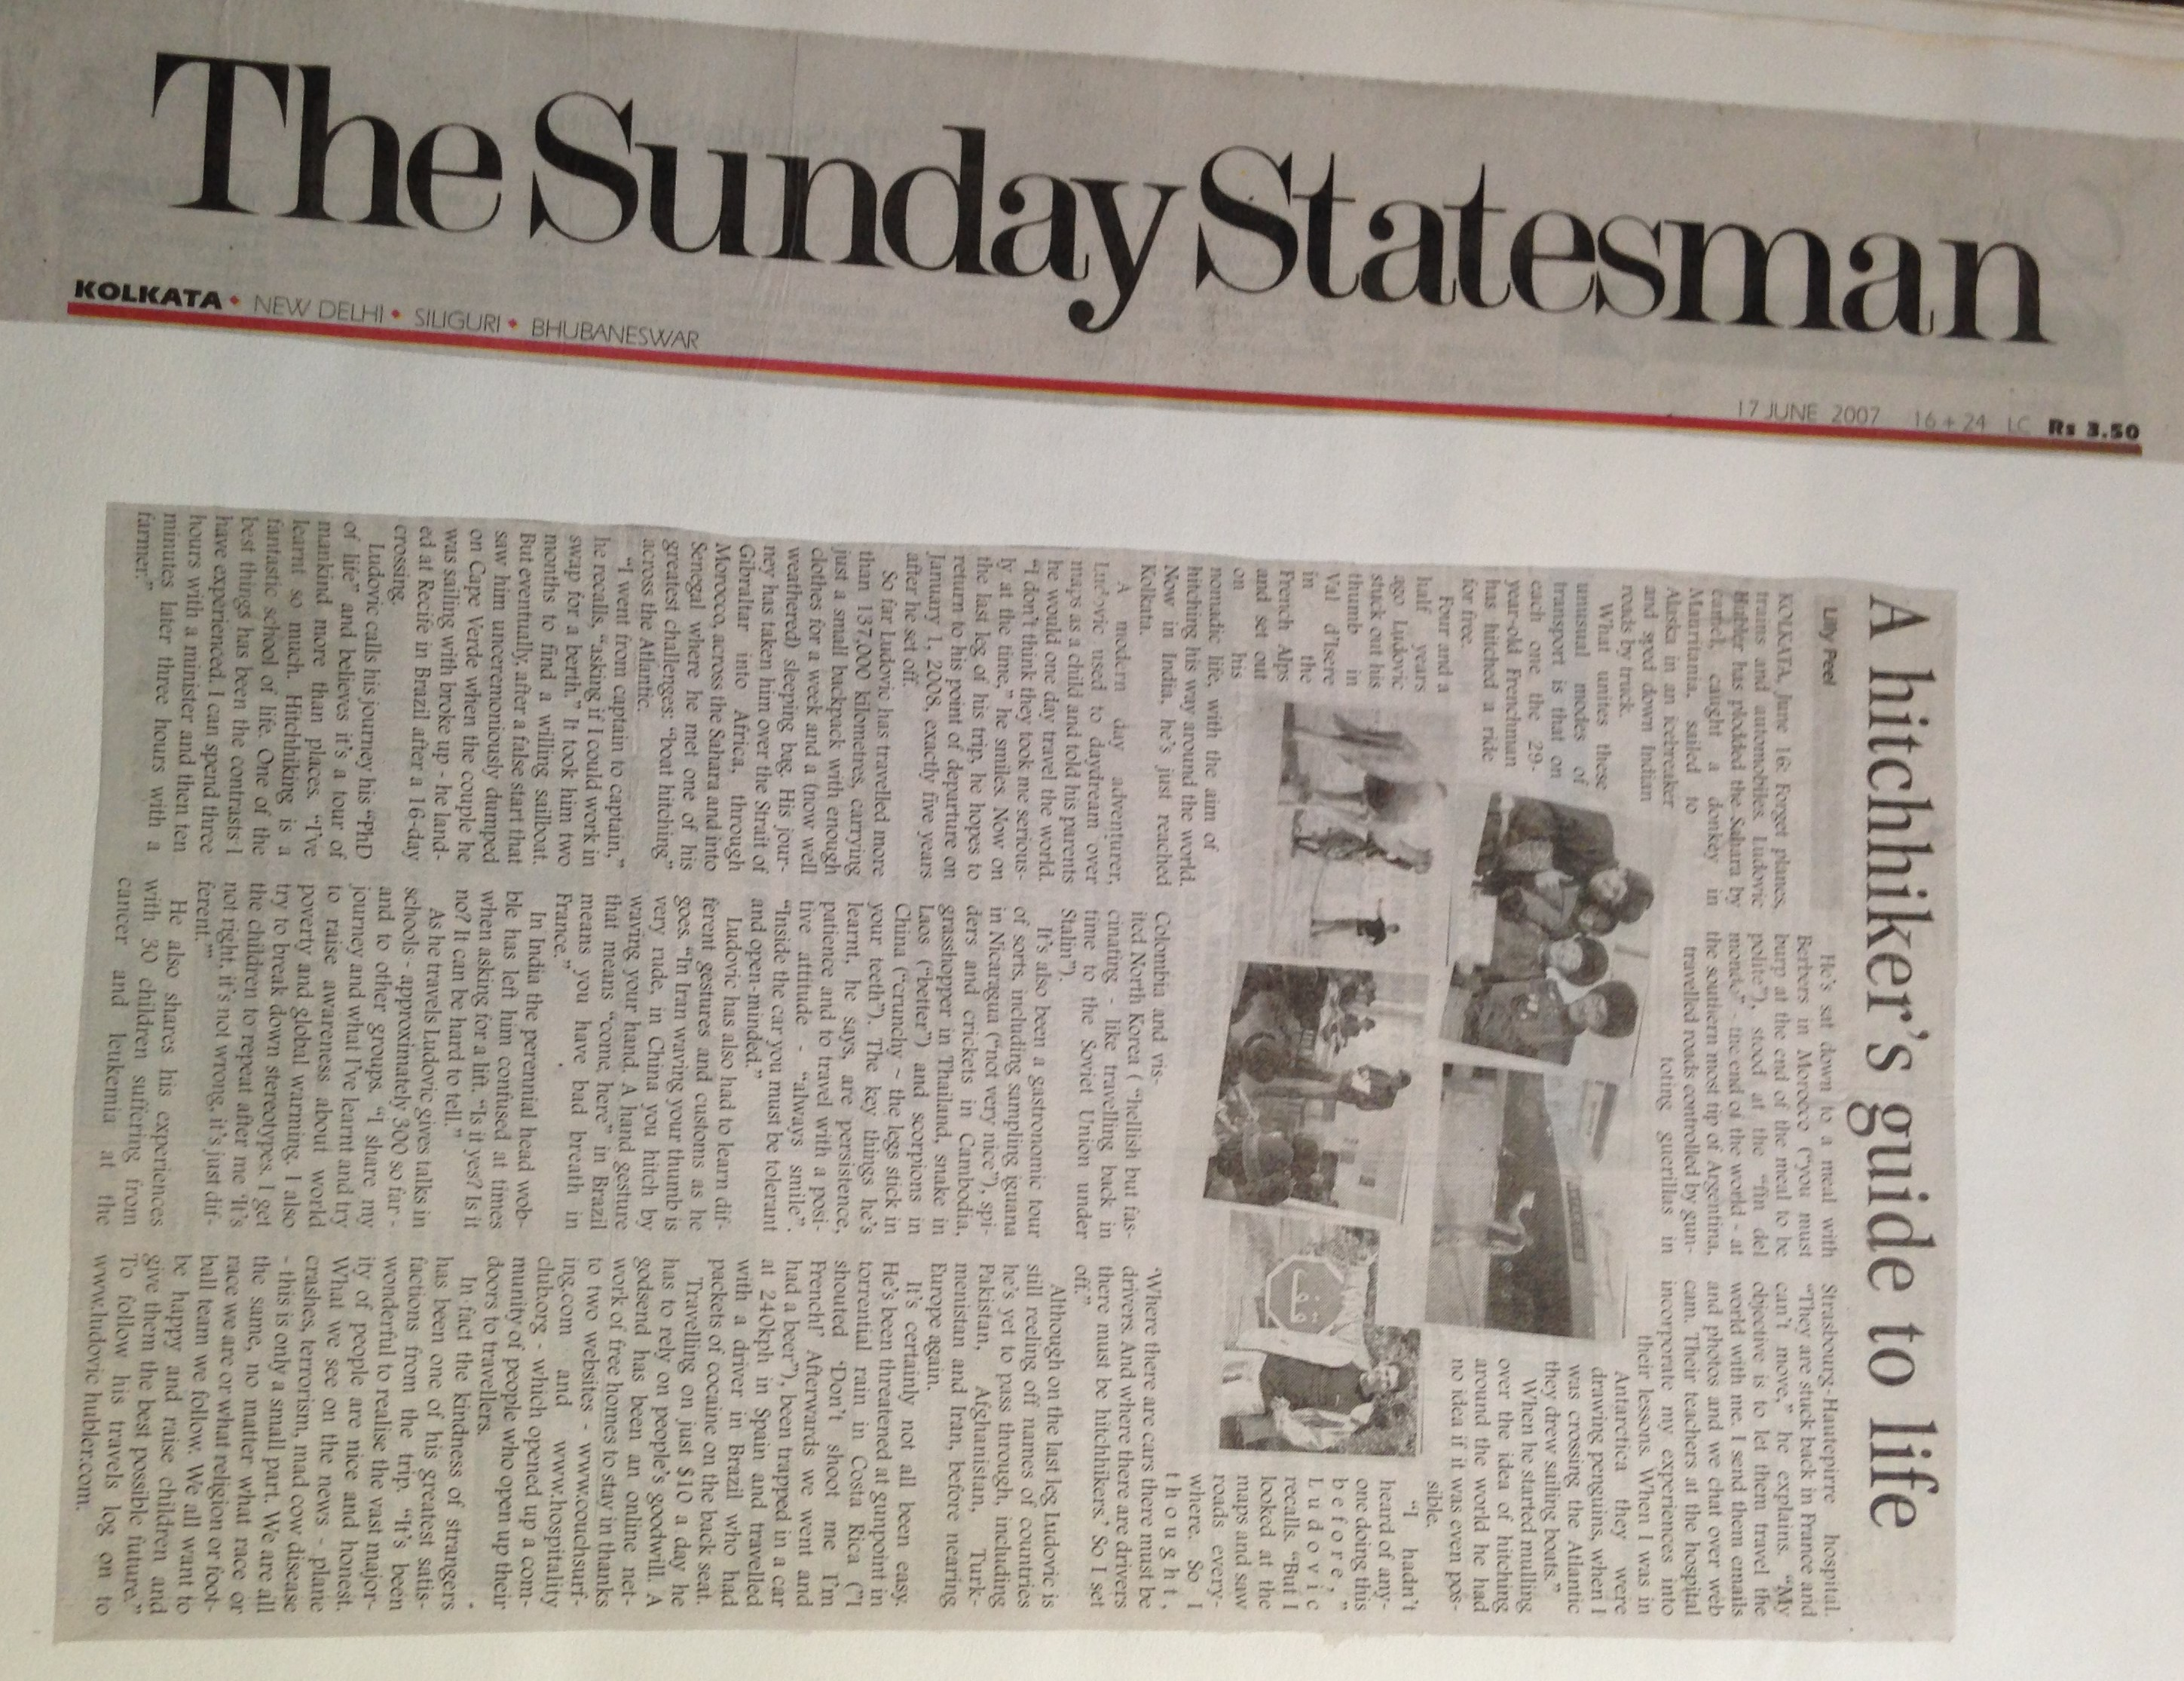 Inde - Calcutta - The Sunday Statesman - 2007